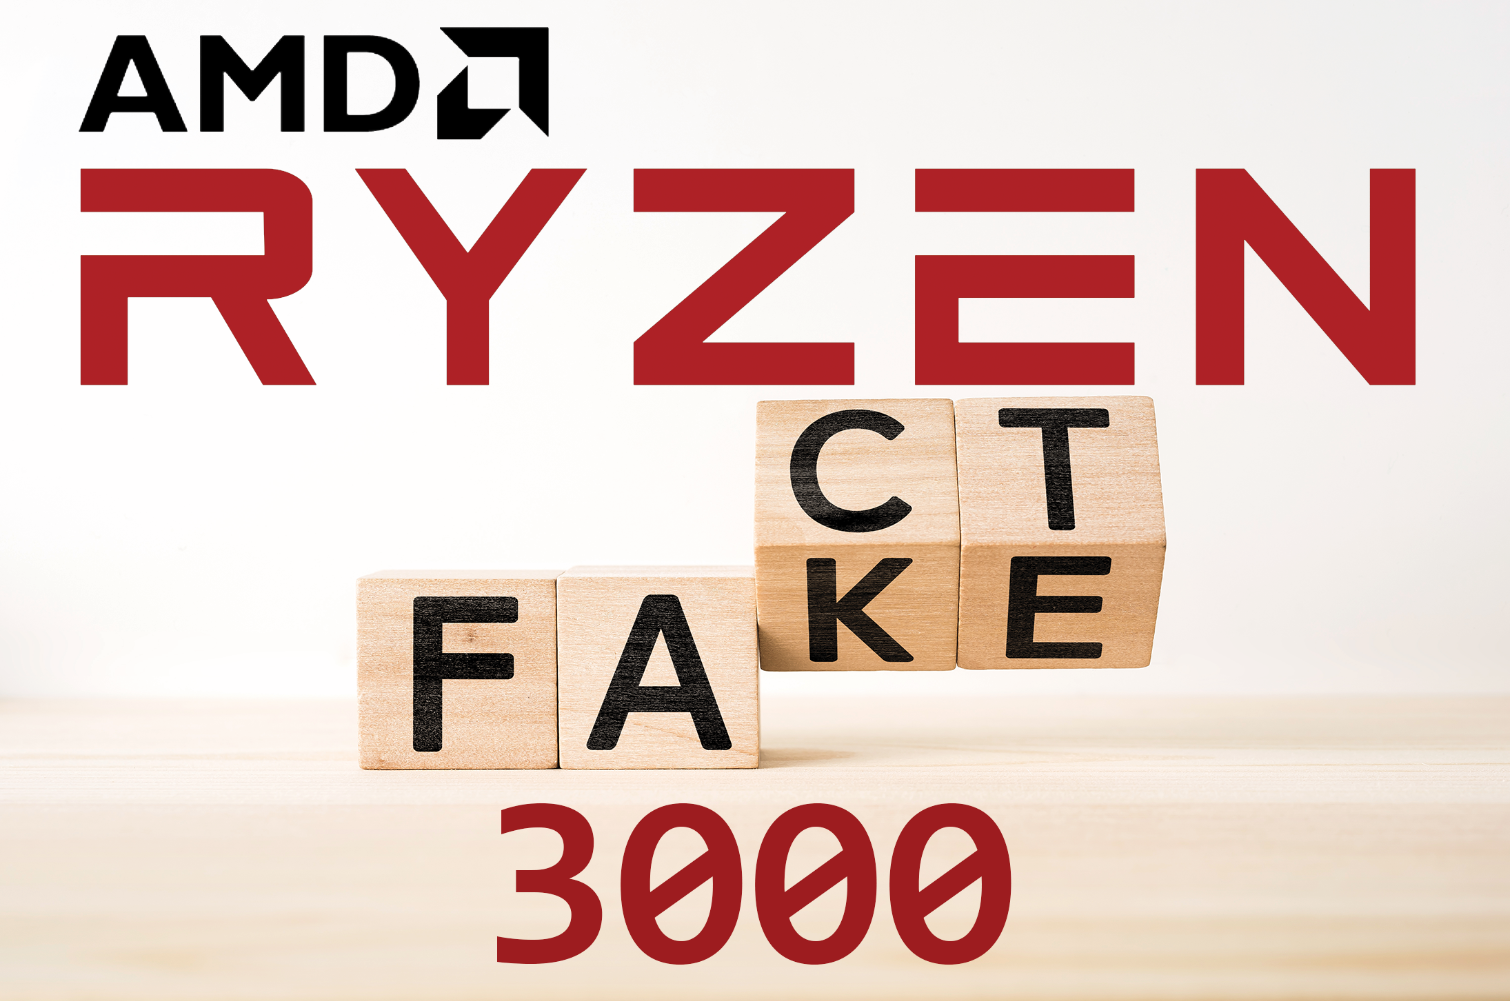 Amd Ryzen 3000 Series Cpus Rumors Release Date All We Know About Ryzen 3 Tom S Hardware